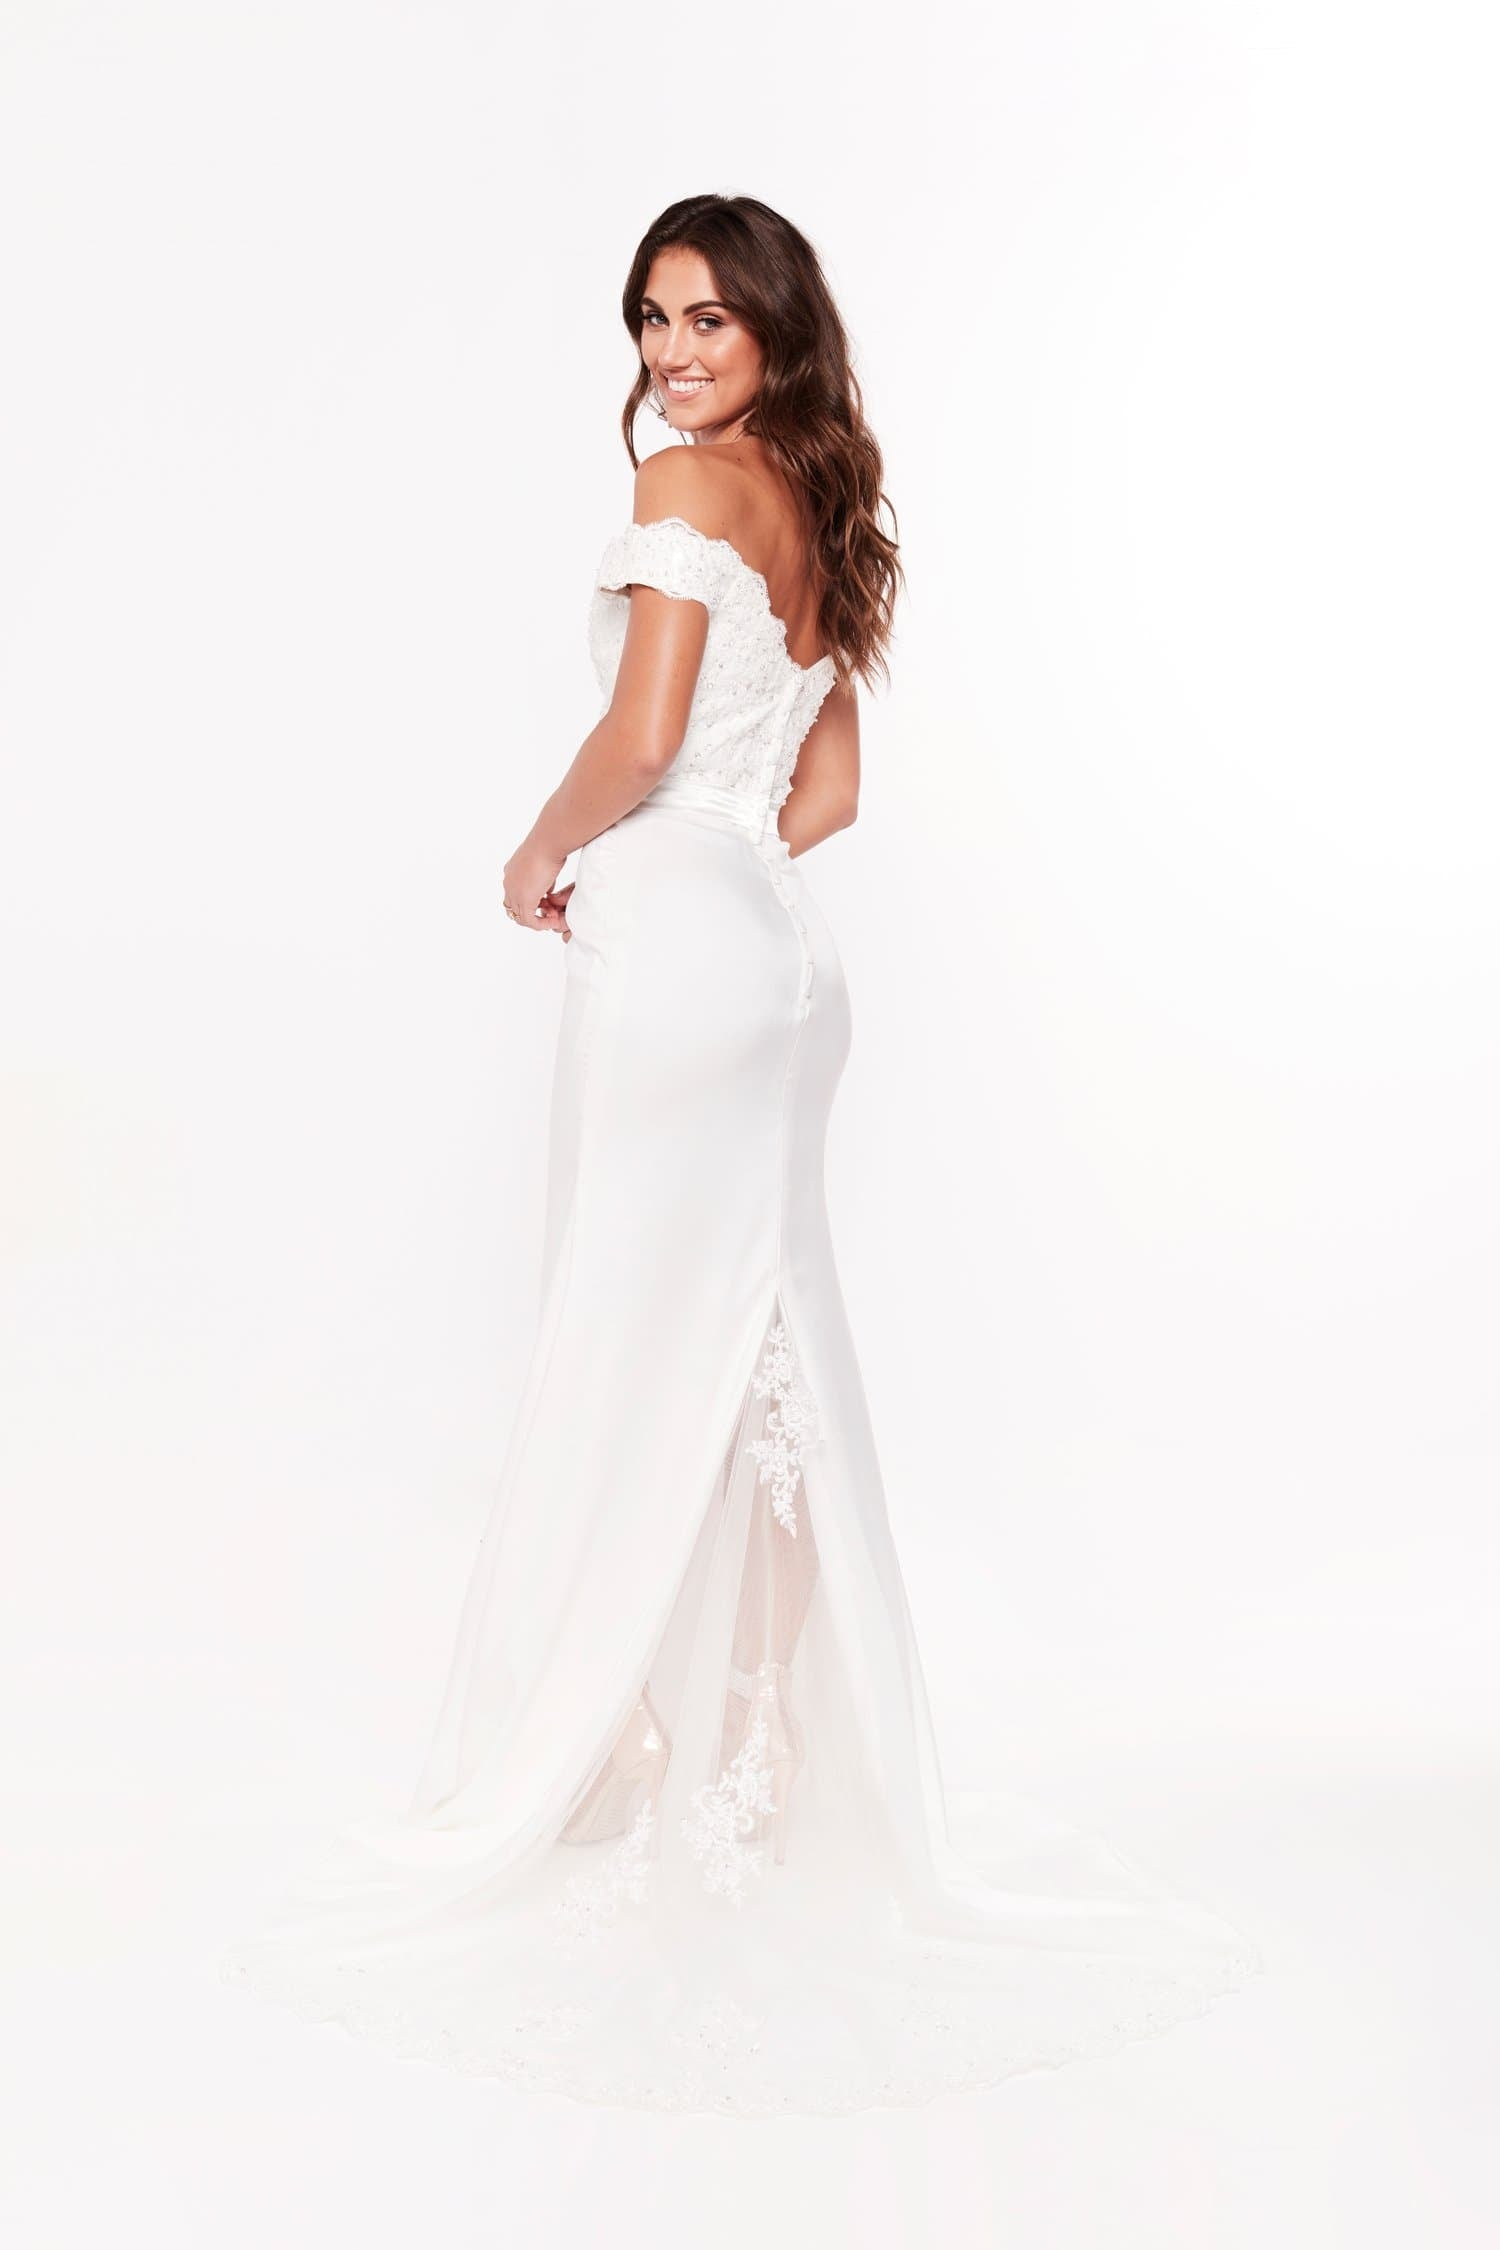 Sandy Offshoulder white beaded gown bridal dress